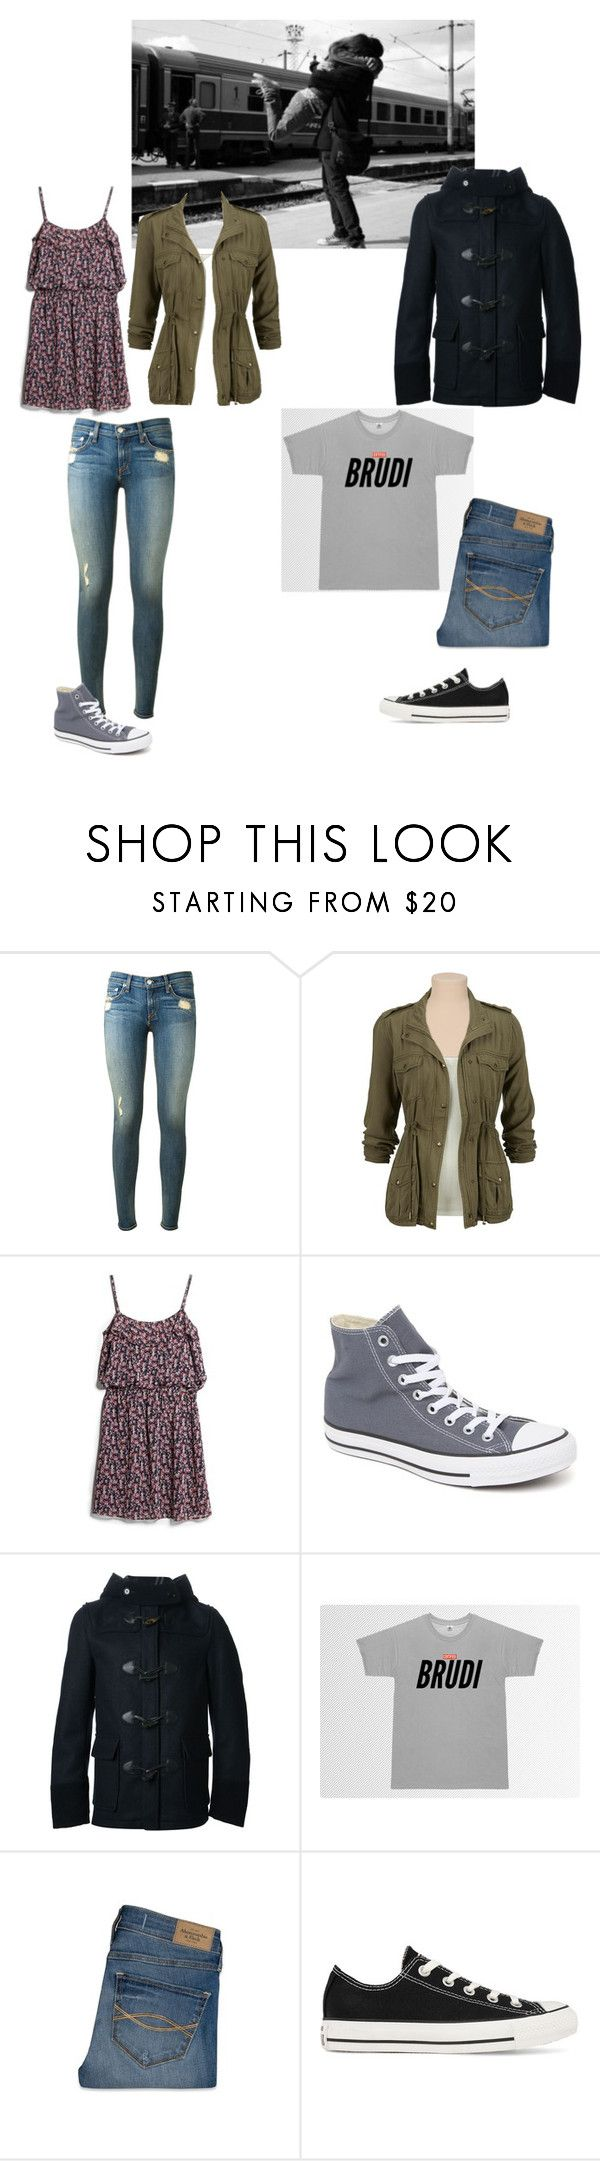 """""""Wiedersehen *~*"""" by louisamxrie ❤ liked on Polyvore featuring rag & bone, MANGO, Converse, Junya Watanabe Comme des Garçons and Abercrombie & Fitch"""